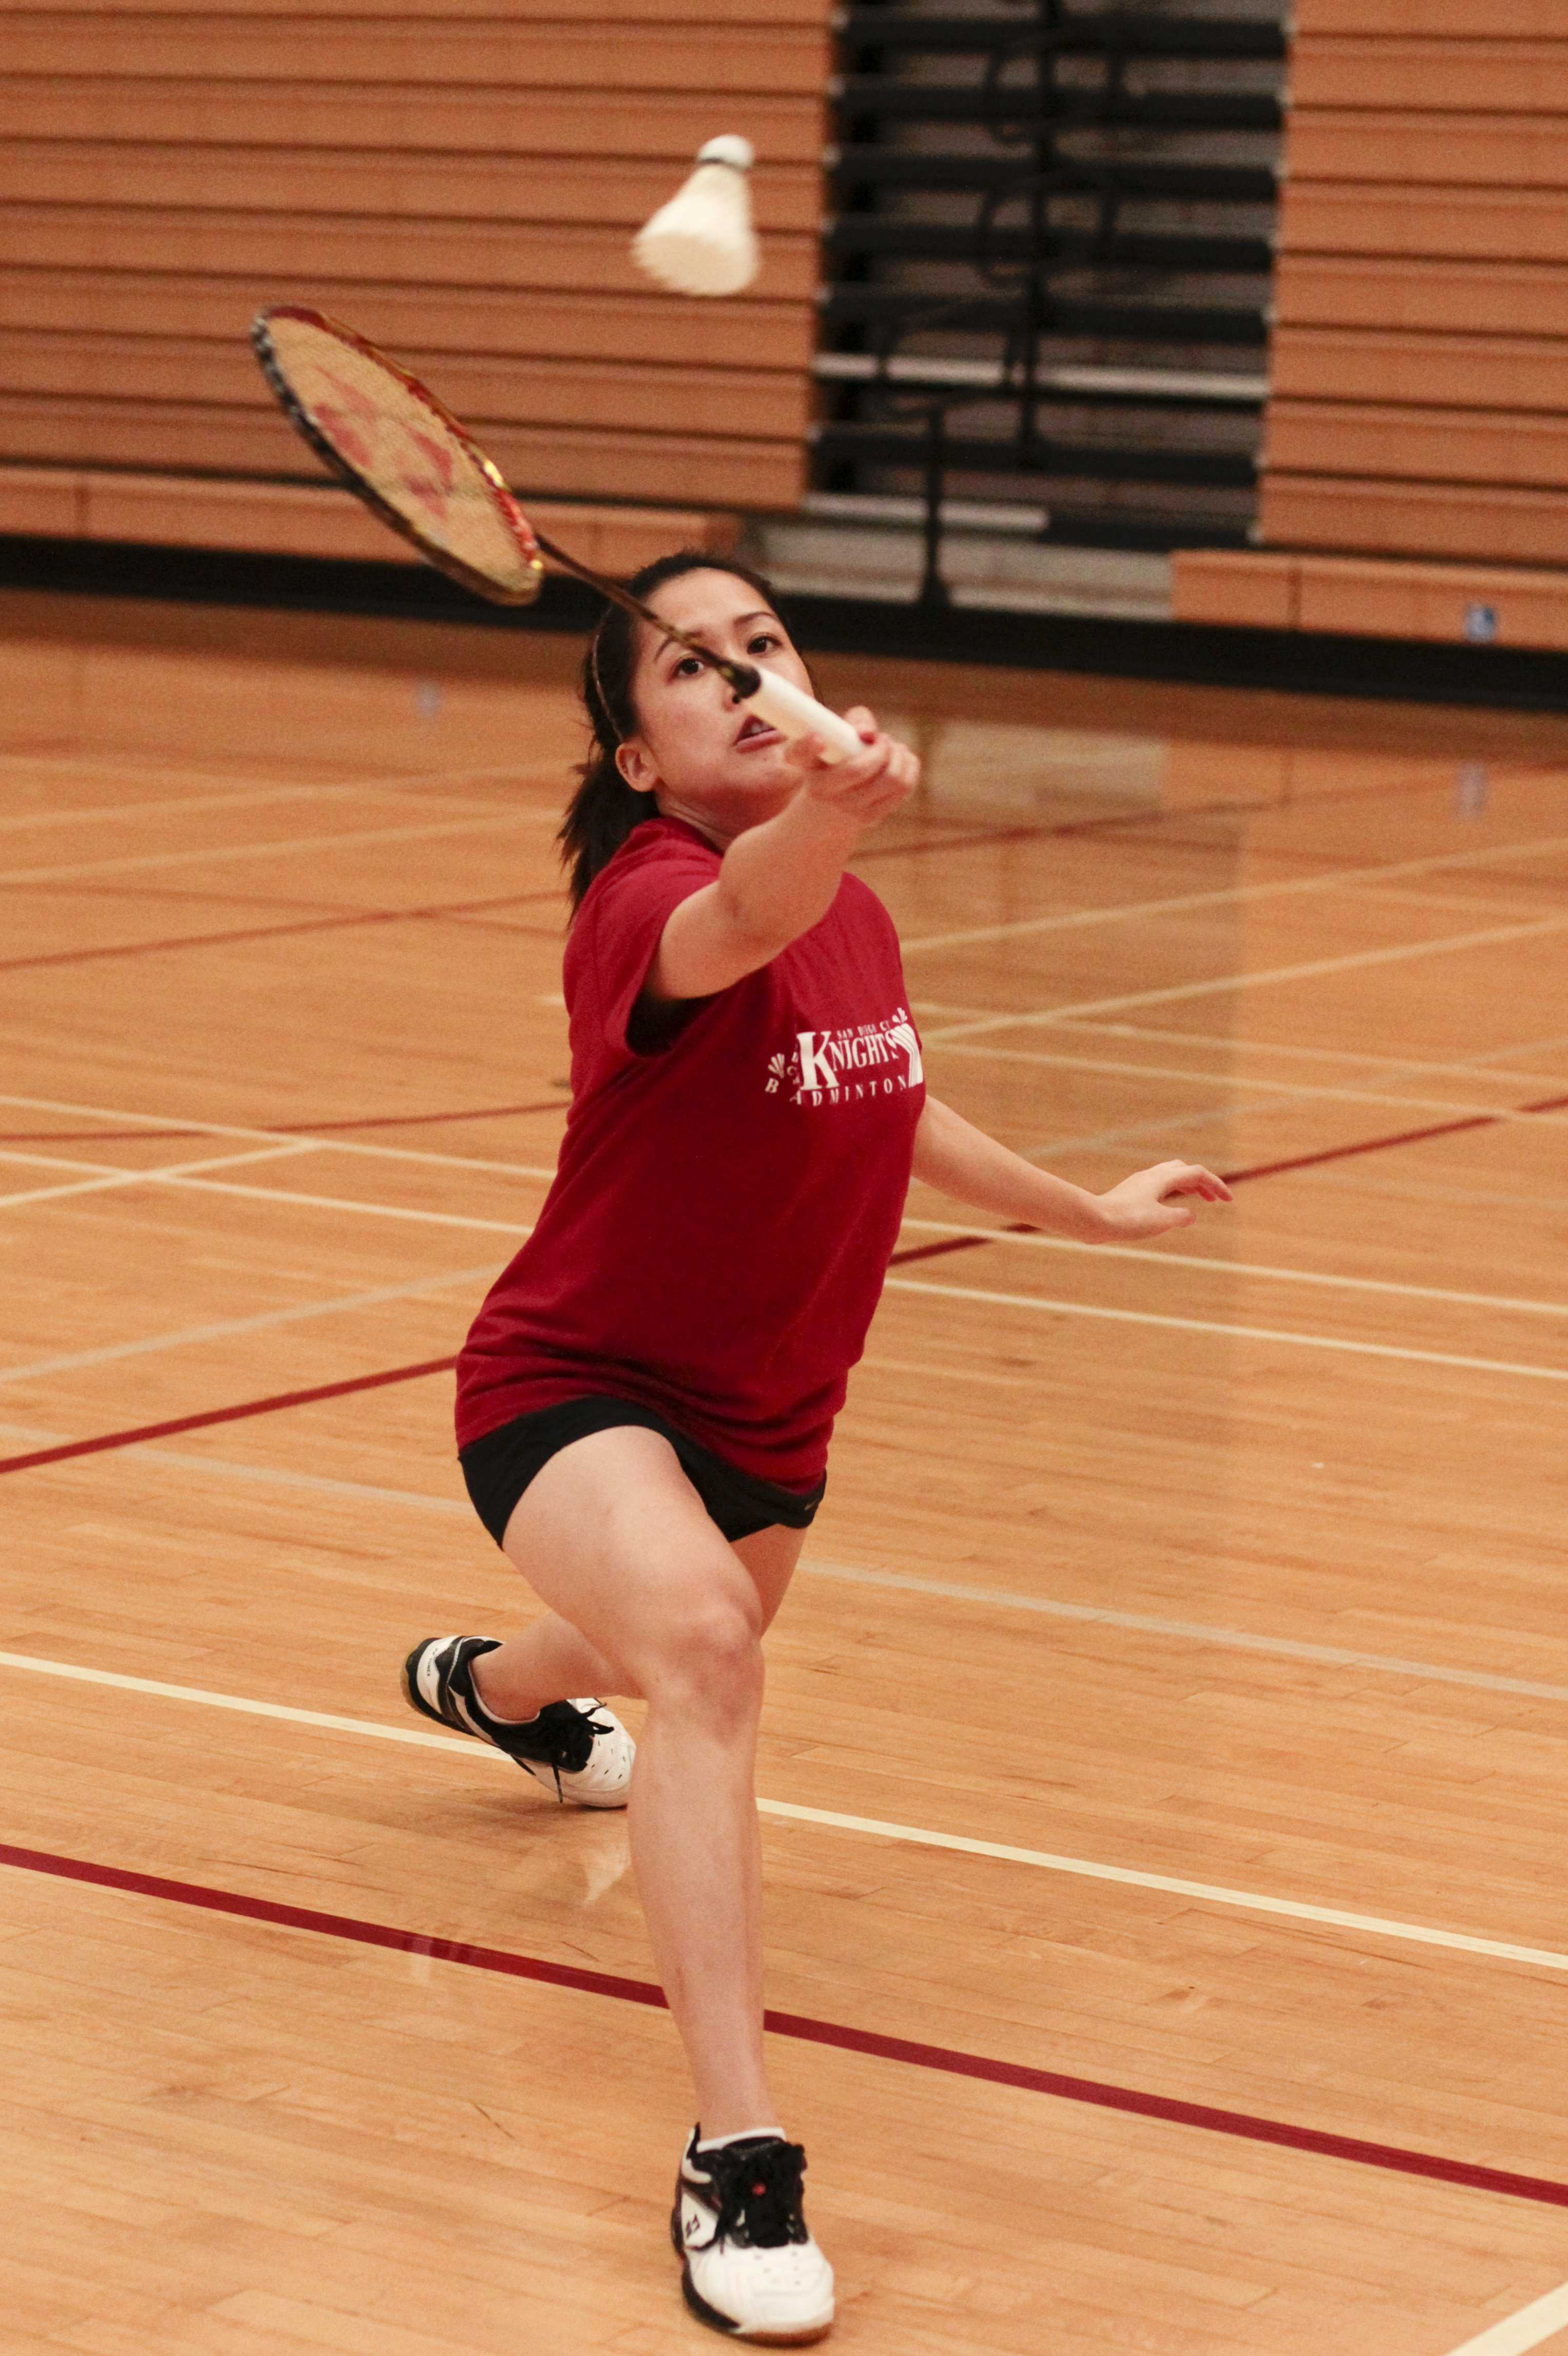 Sophomore star Darby Duprat is helping the Knights women's badminton team try to regain the state championship title they last won in 2012. Photo credit: Celia Jimenez